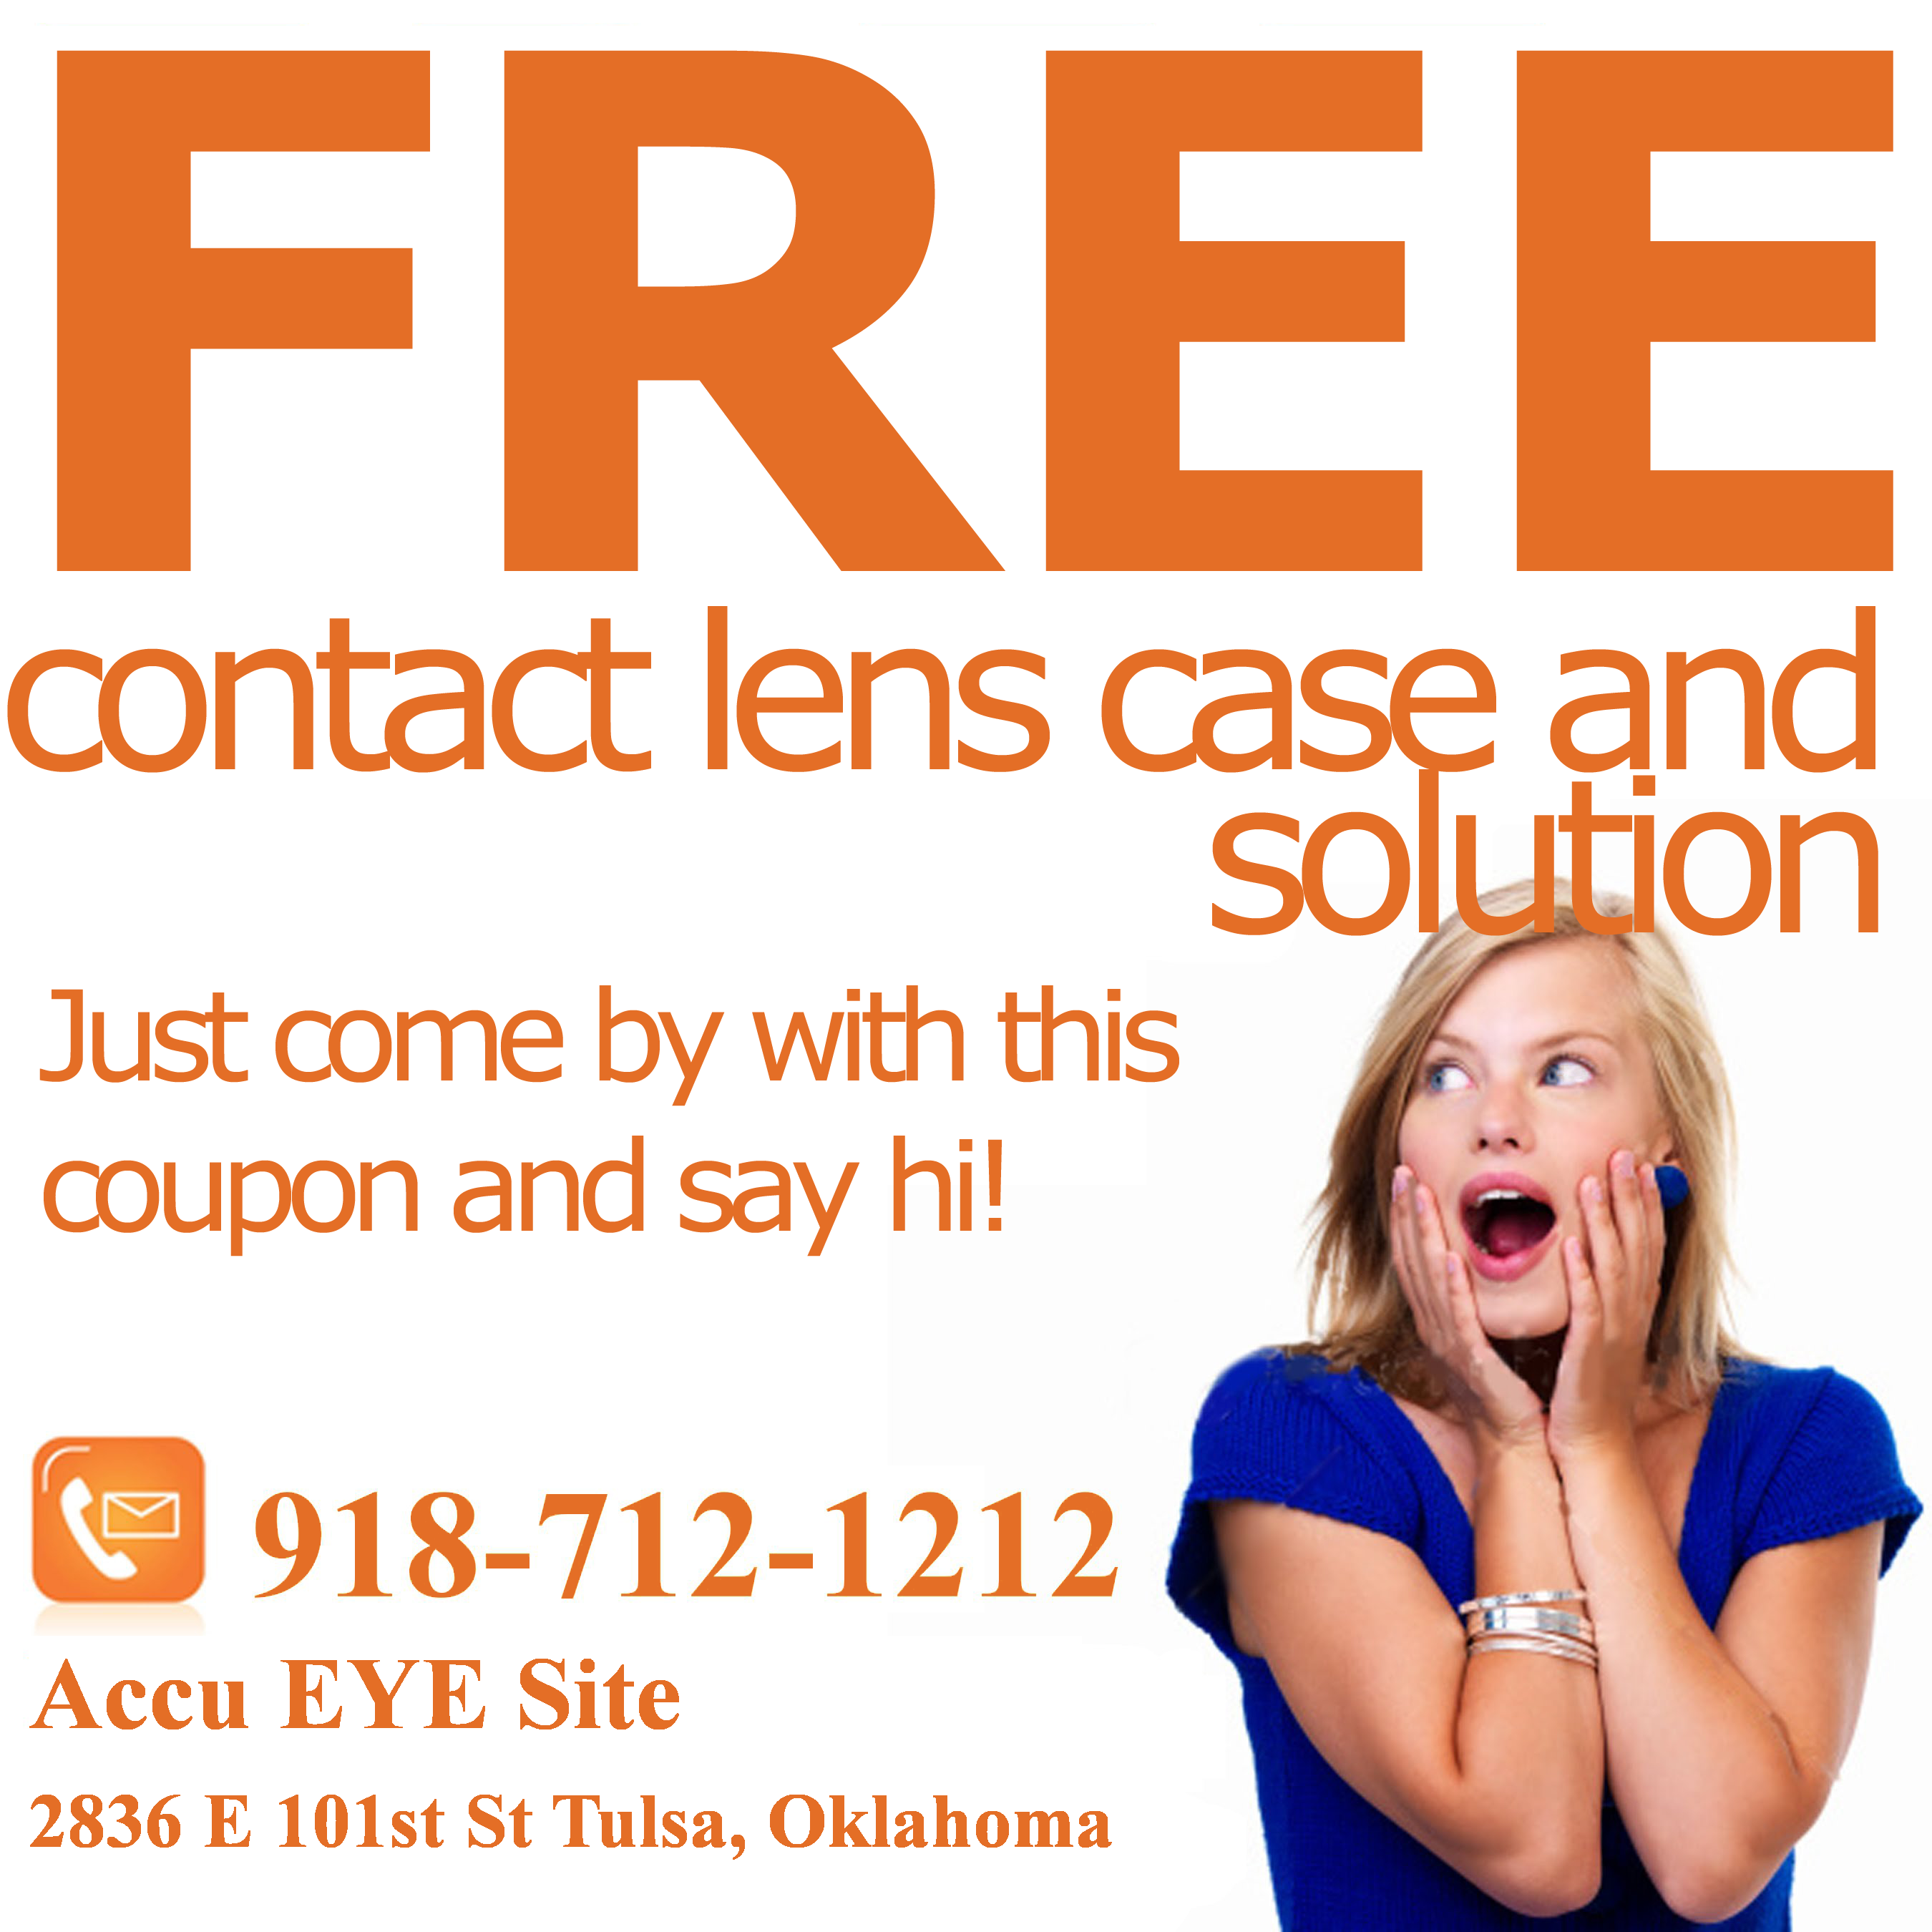 contact lens case coupon